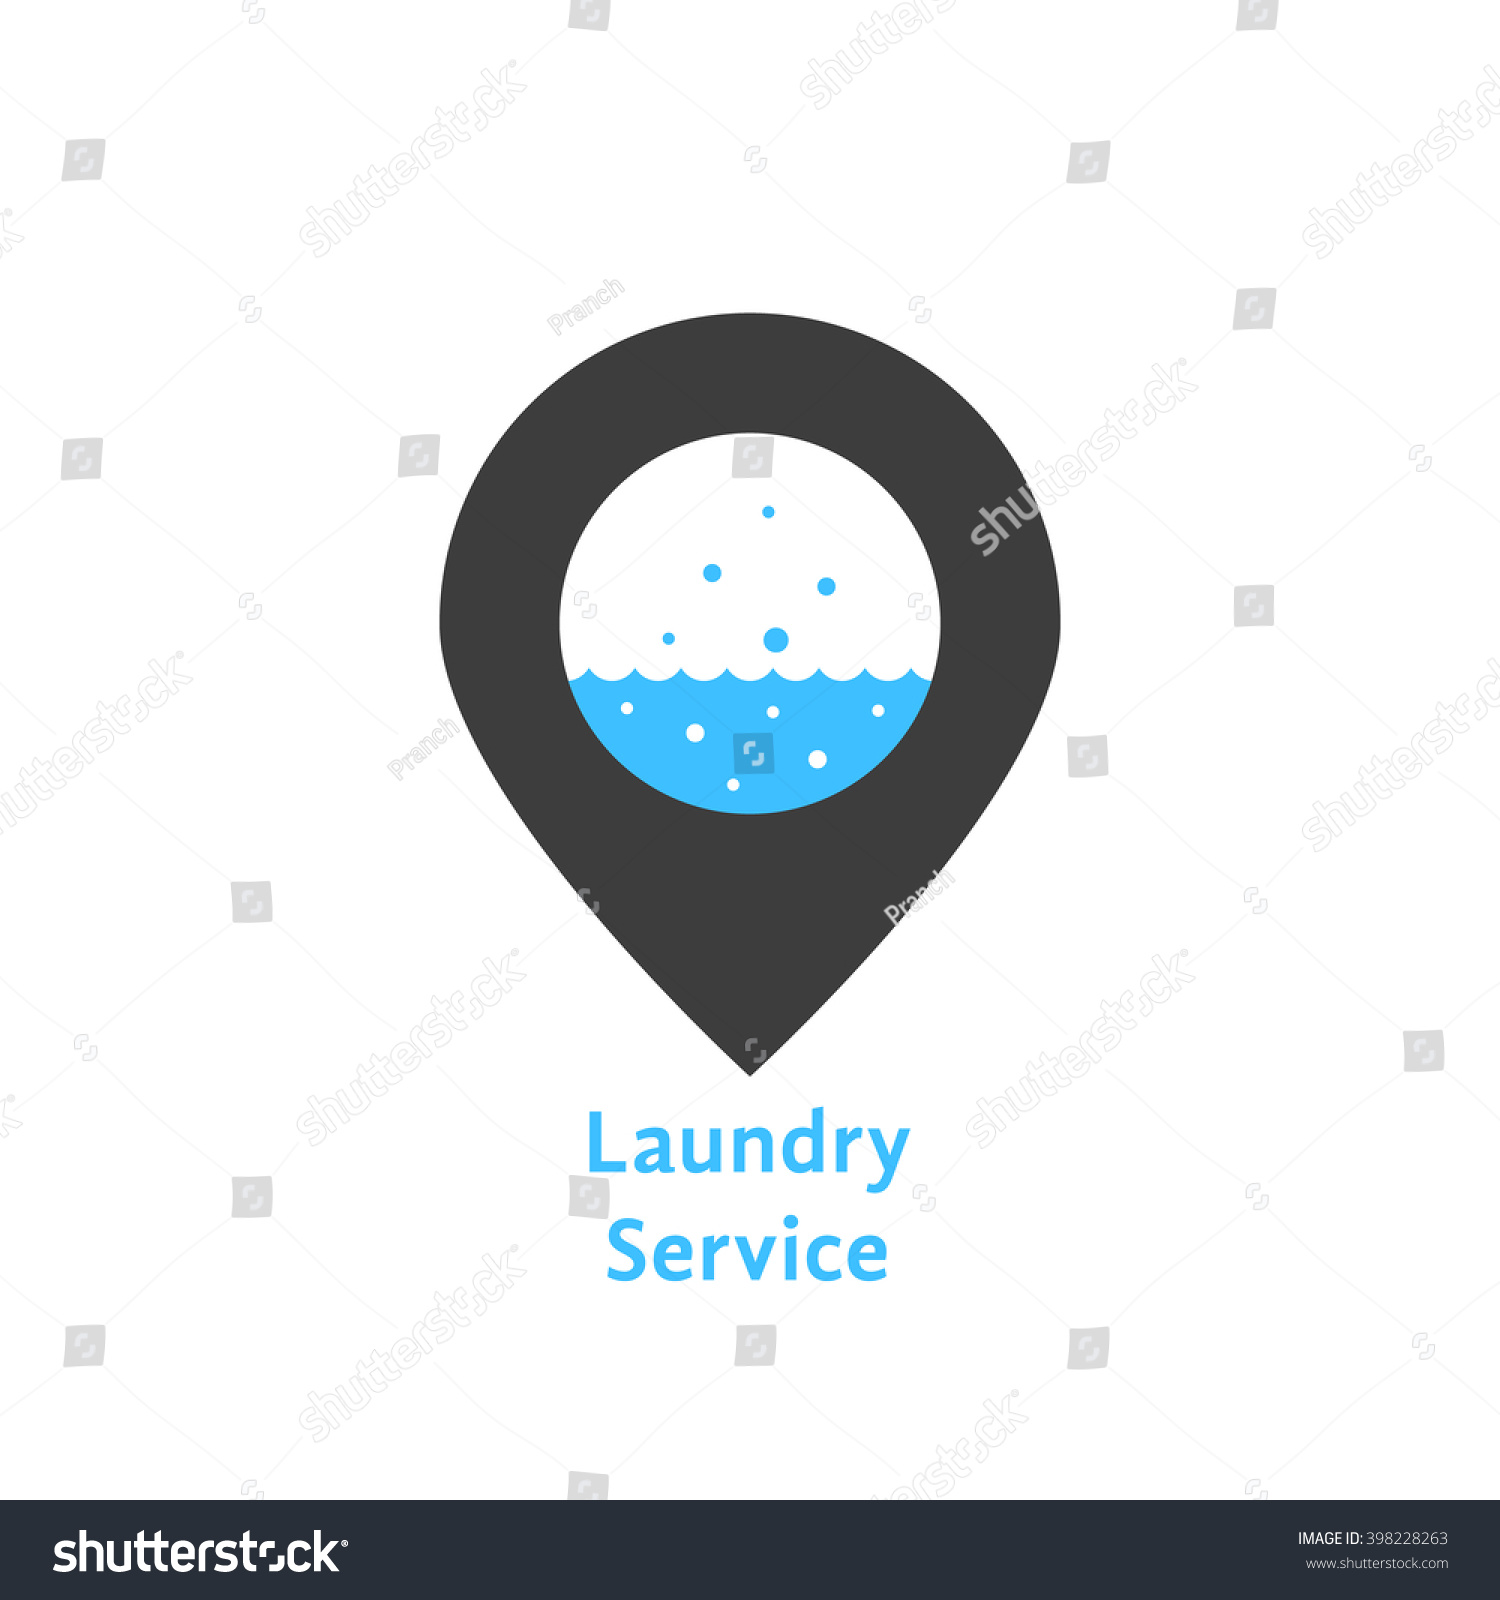 Laundry Service Simple Pin Concept Professional Stock Photo Photo